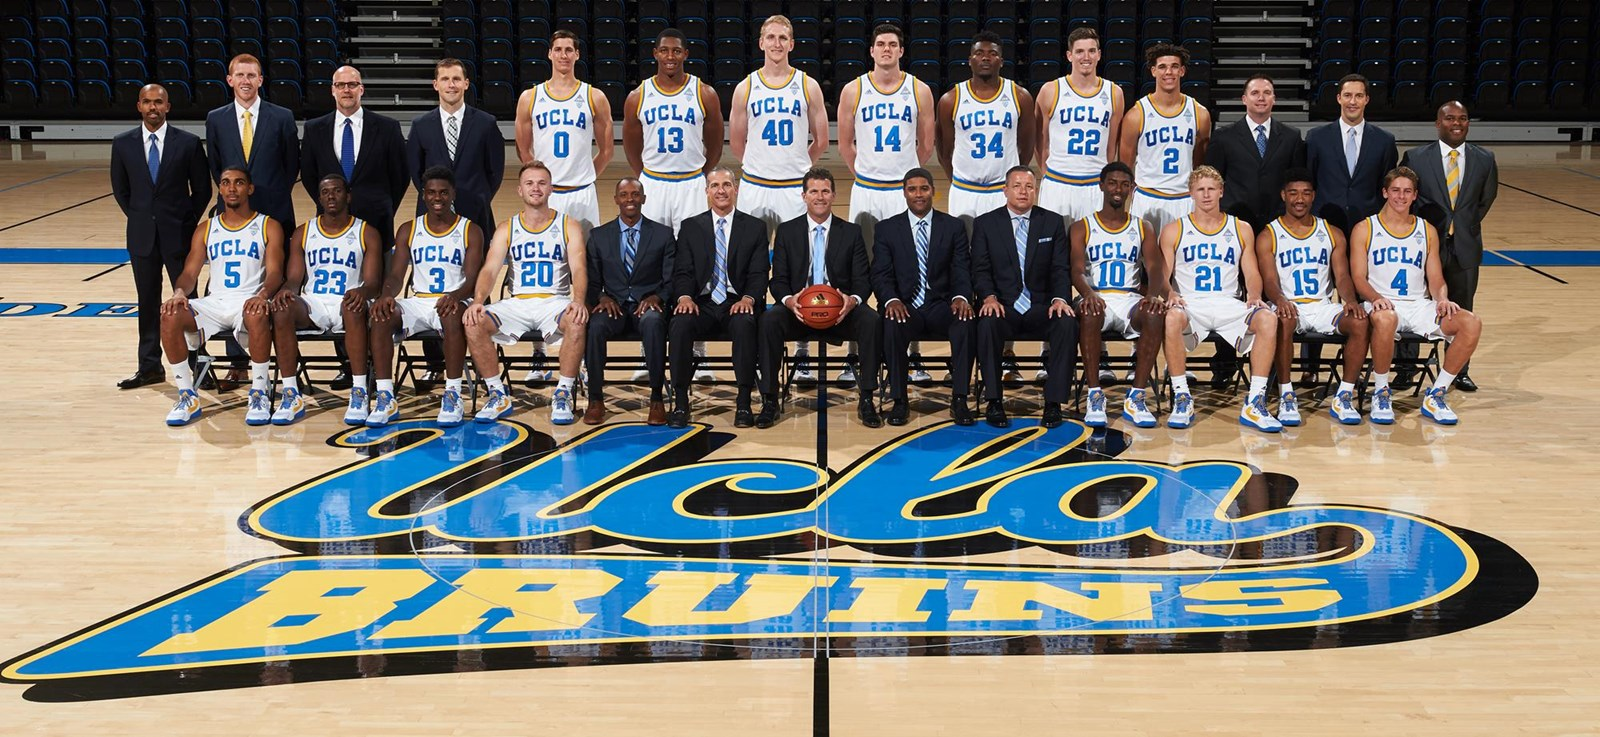 2016-17 Men s Basketball Roster - UCLA a0b8cf01a